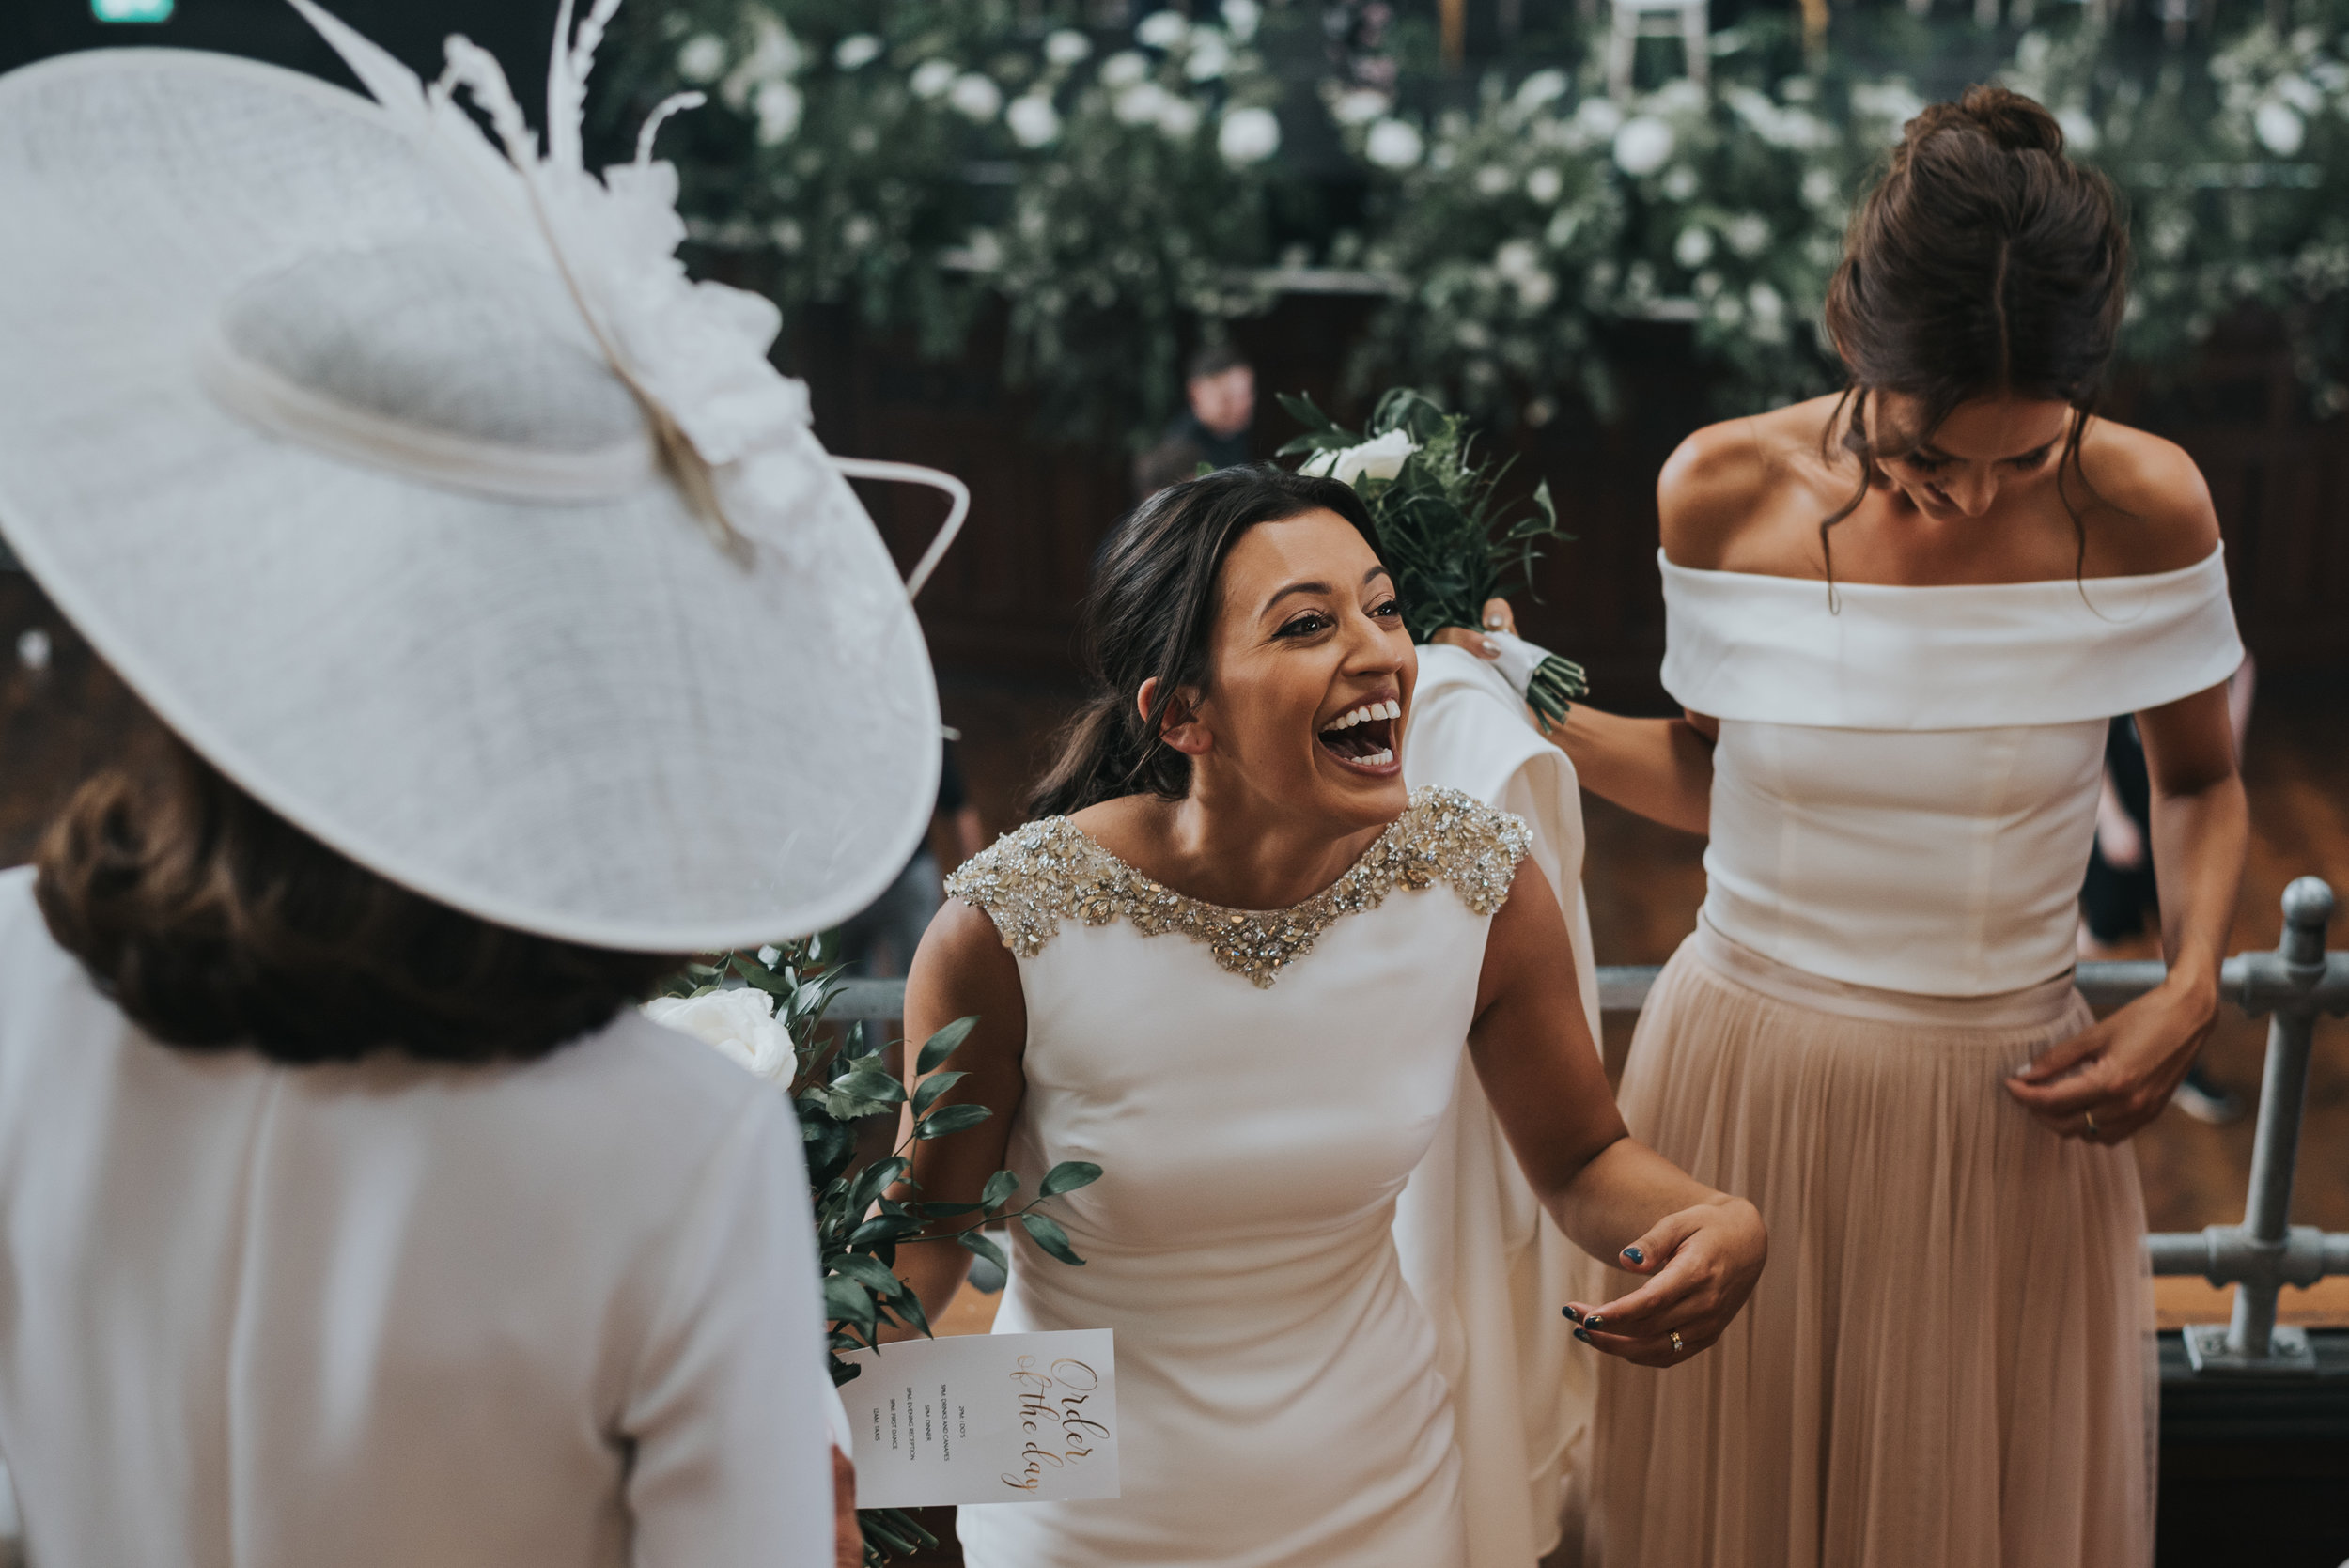 Bride laughing with mother of the bride and her bridesmaid.